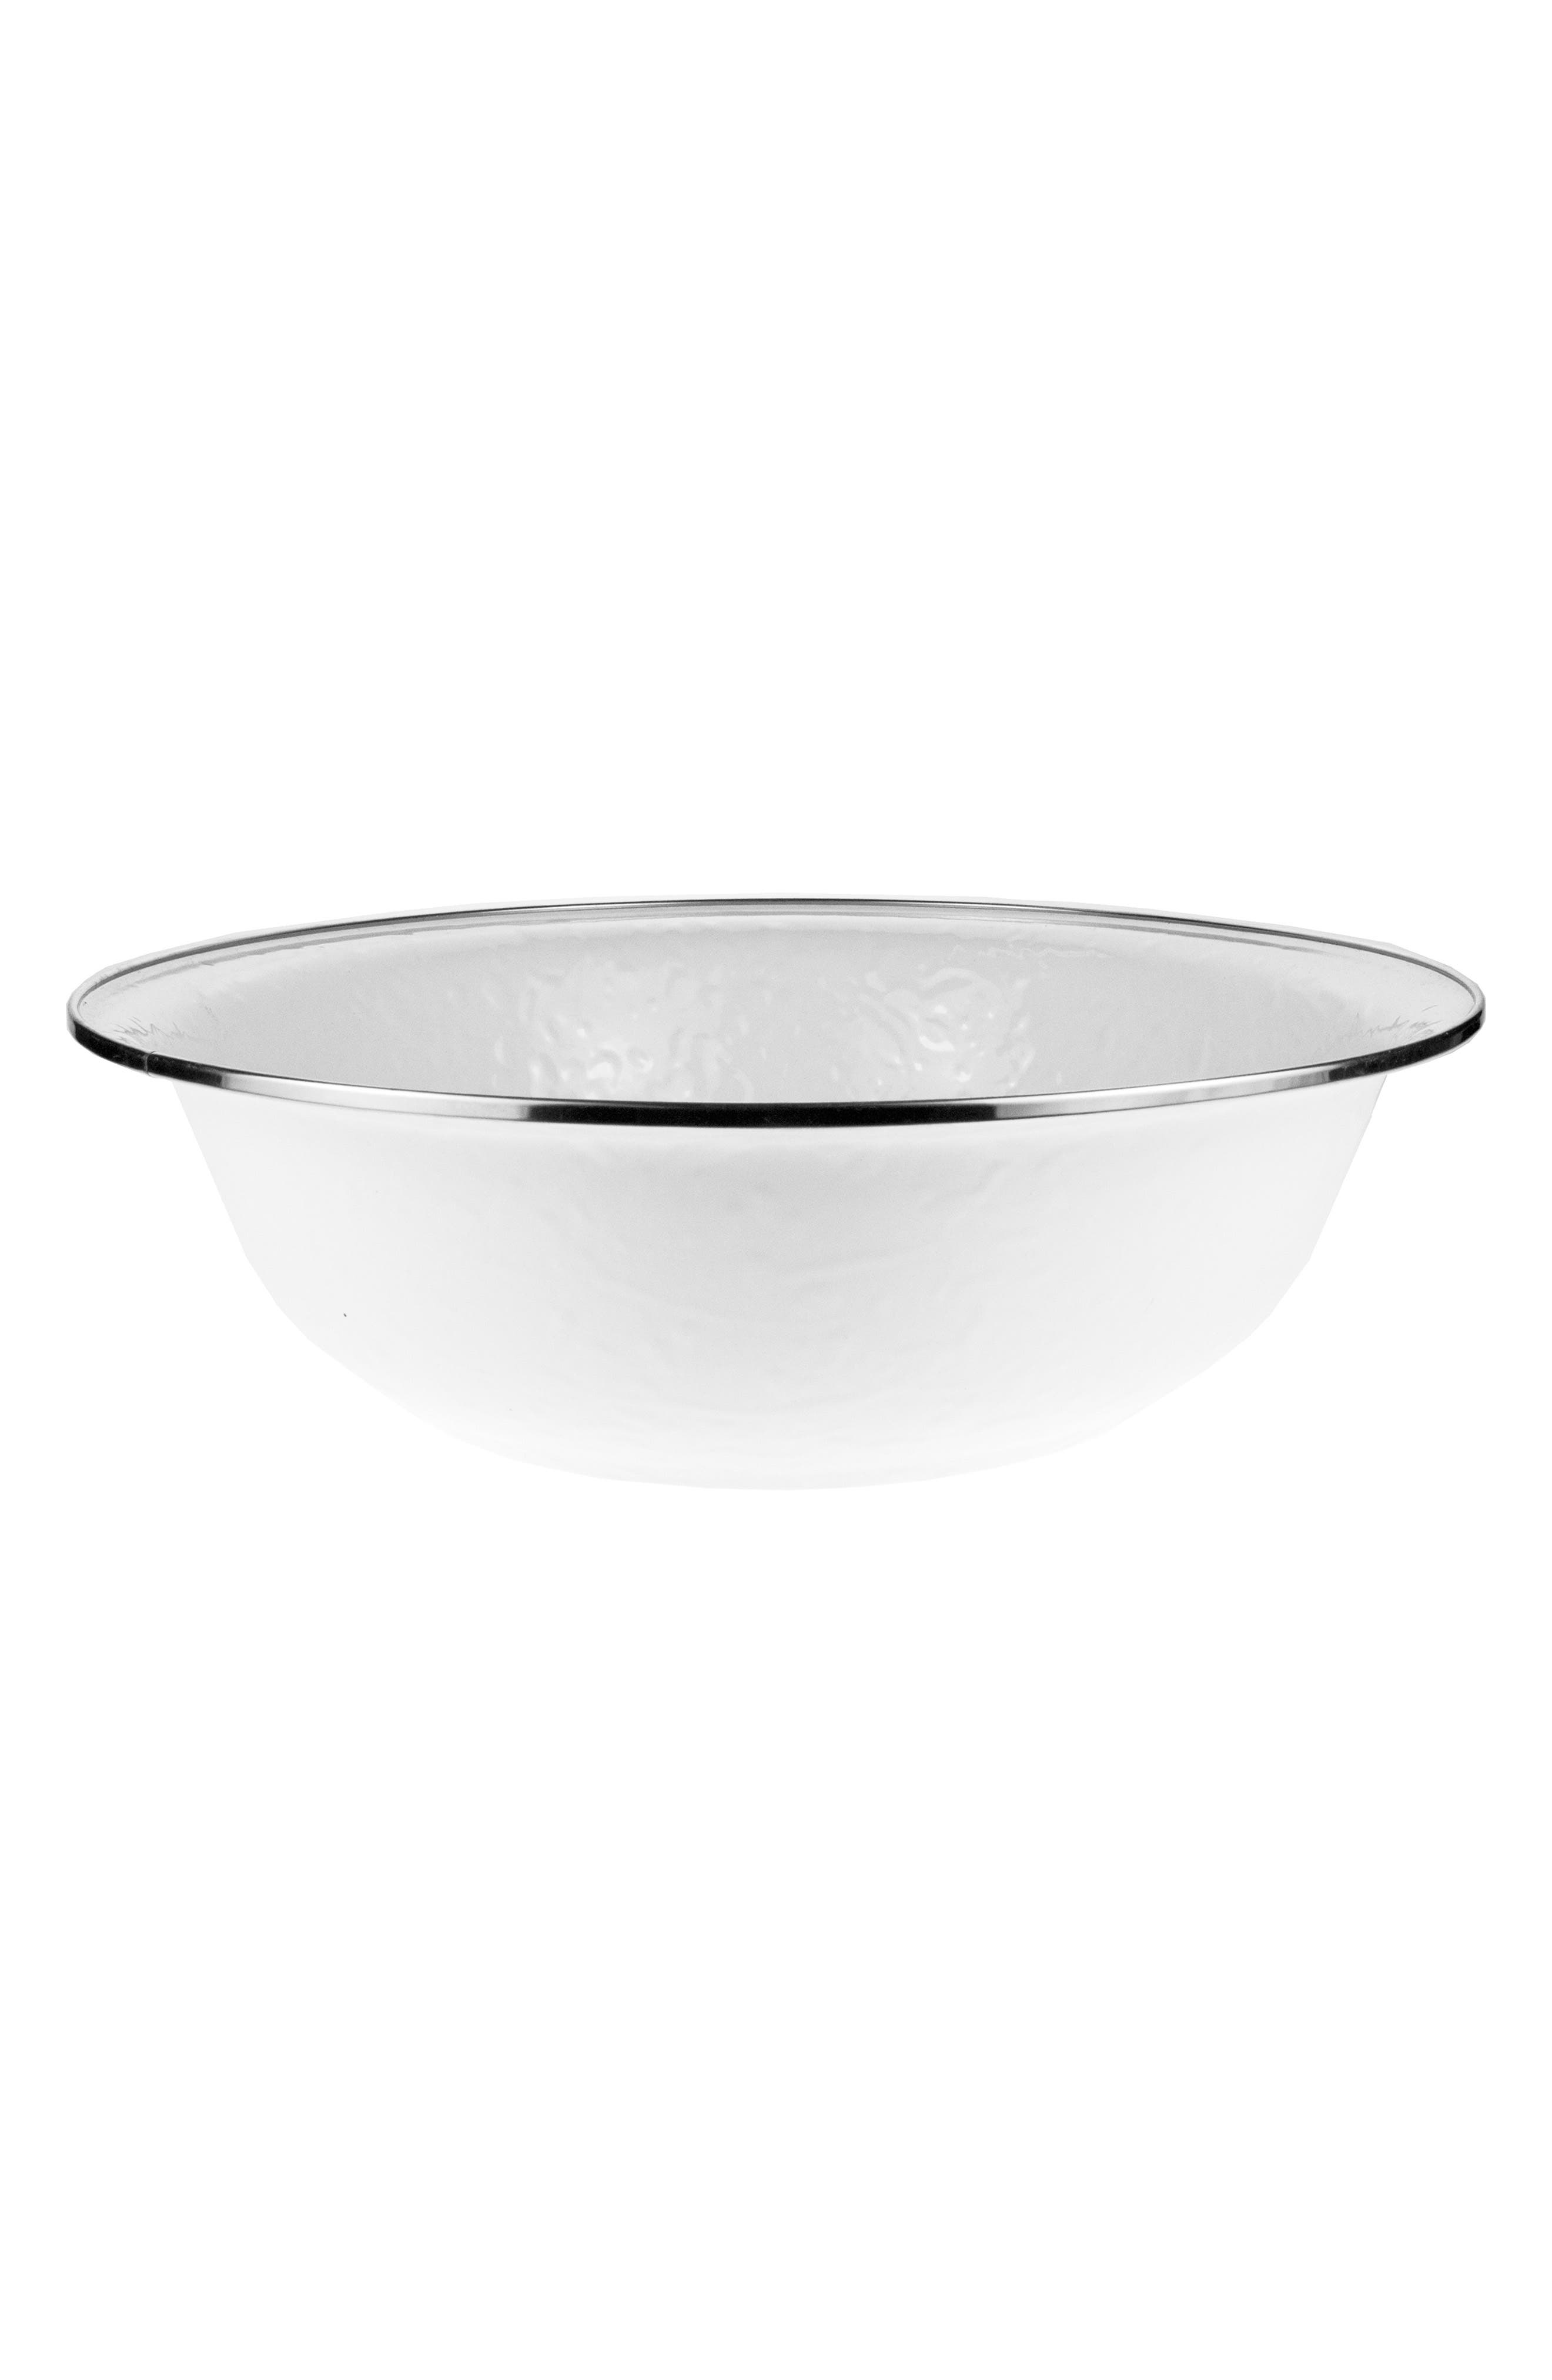 Serving Bowl,                         Main,                         color, Solid White